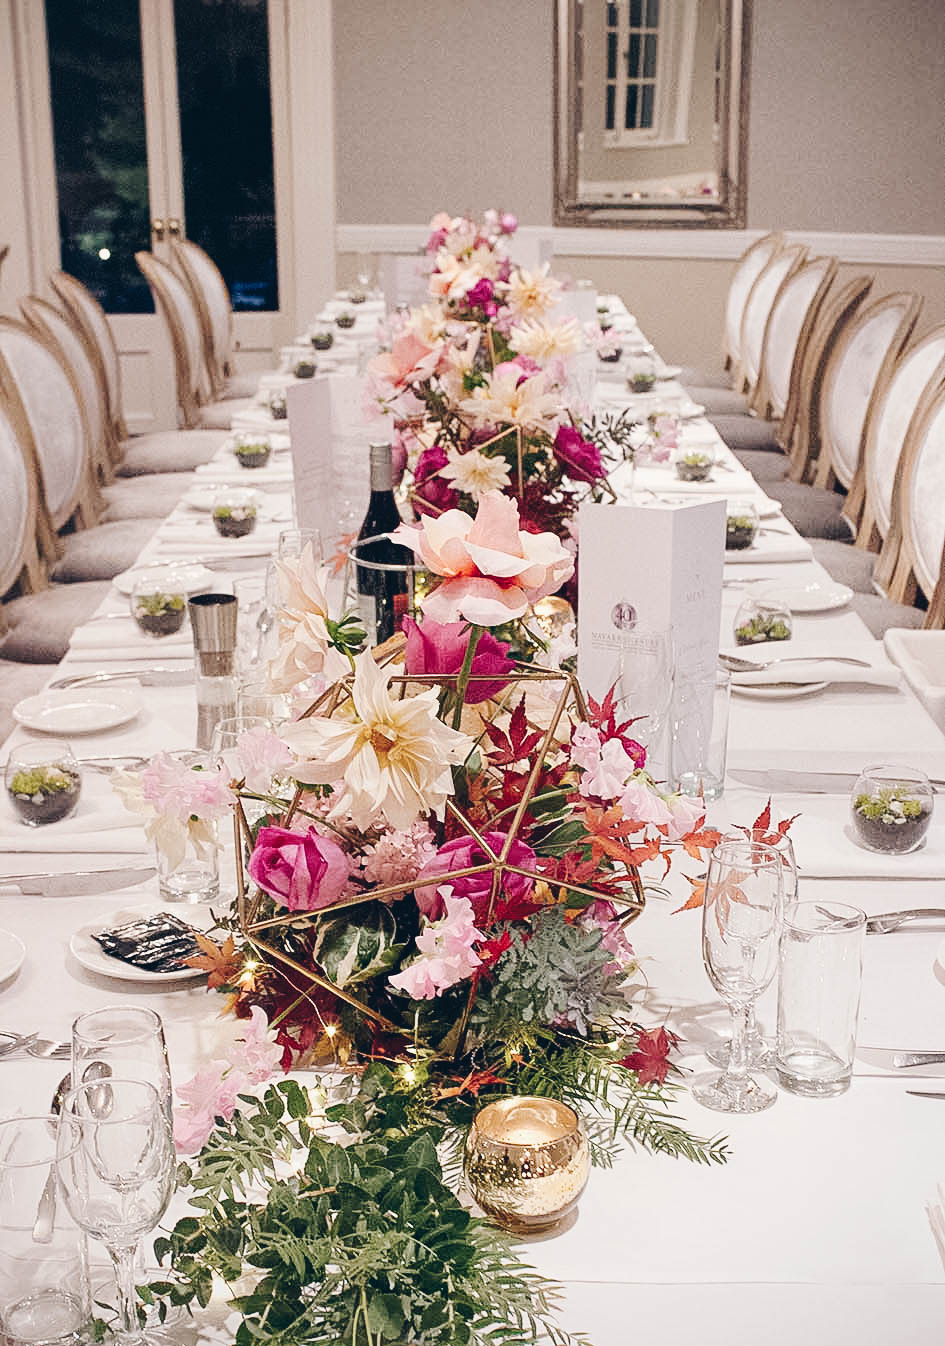 sydney-event-oatlands-house-flowers-table-garland-runner.jpg